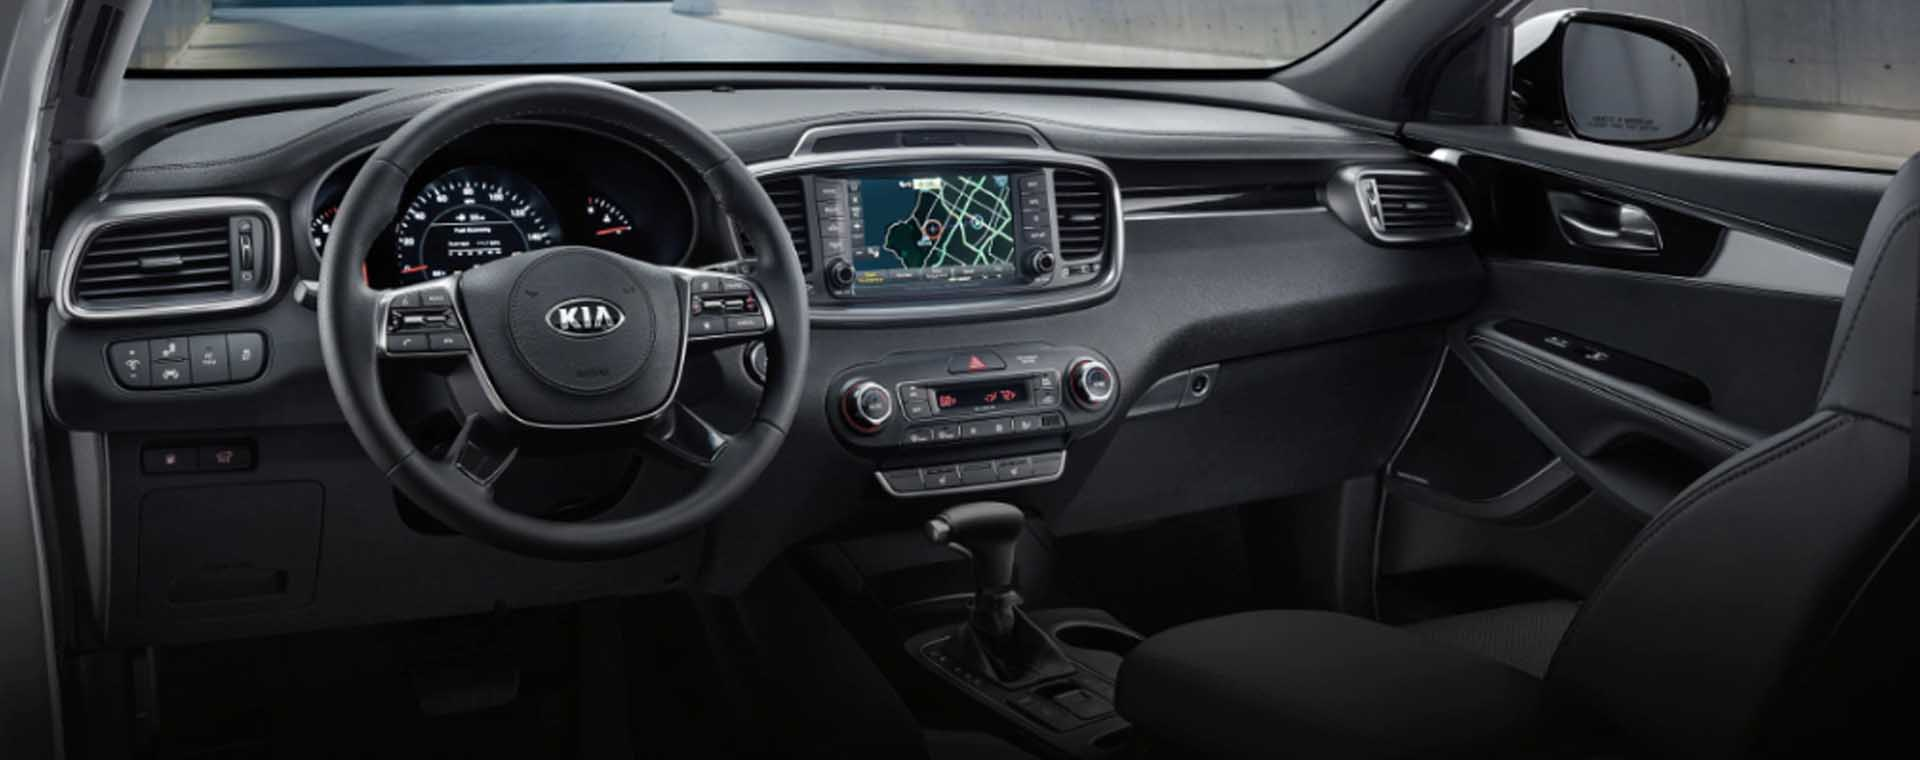 2020 Sorento for sale in Kingsport, Tennessee